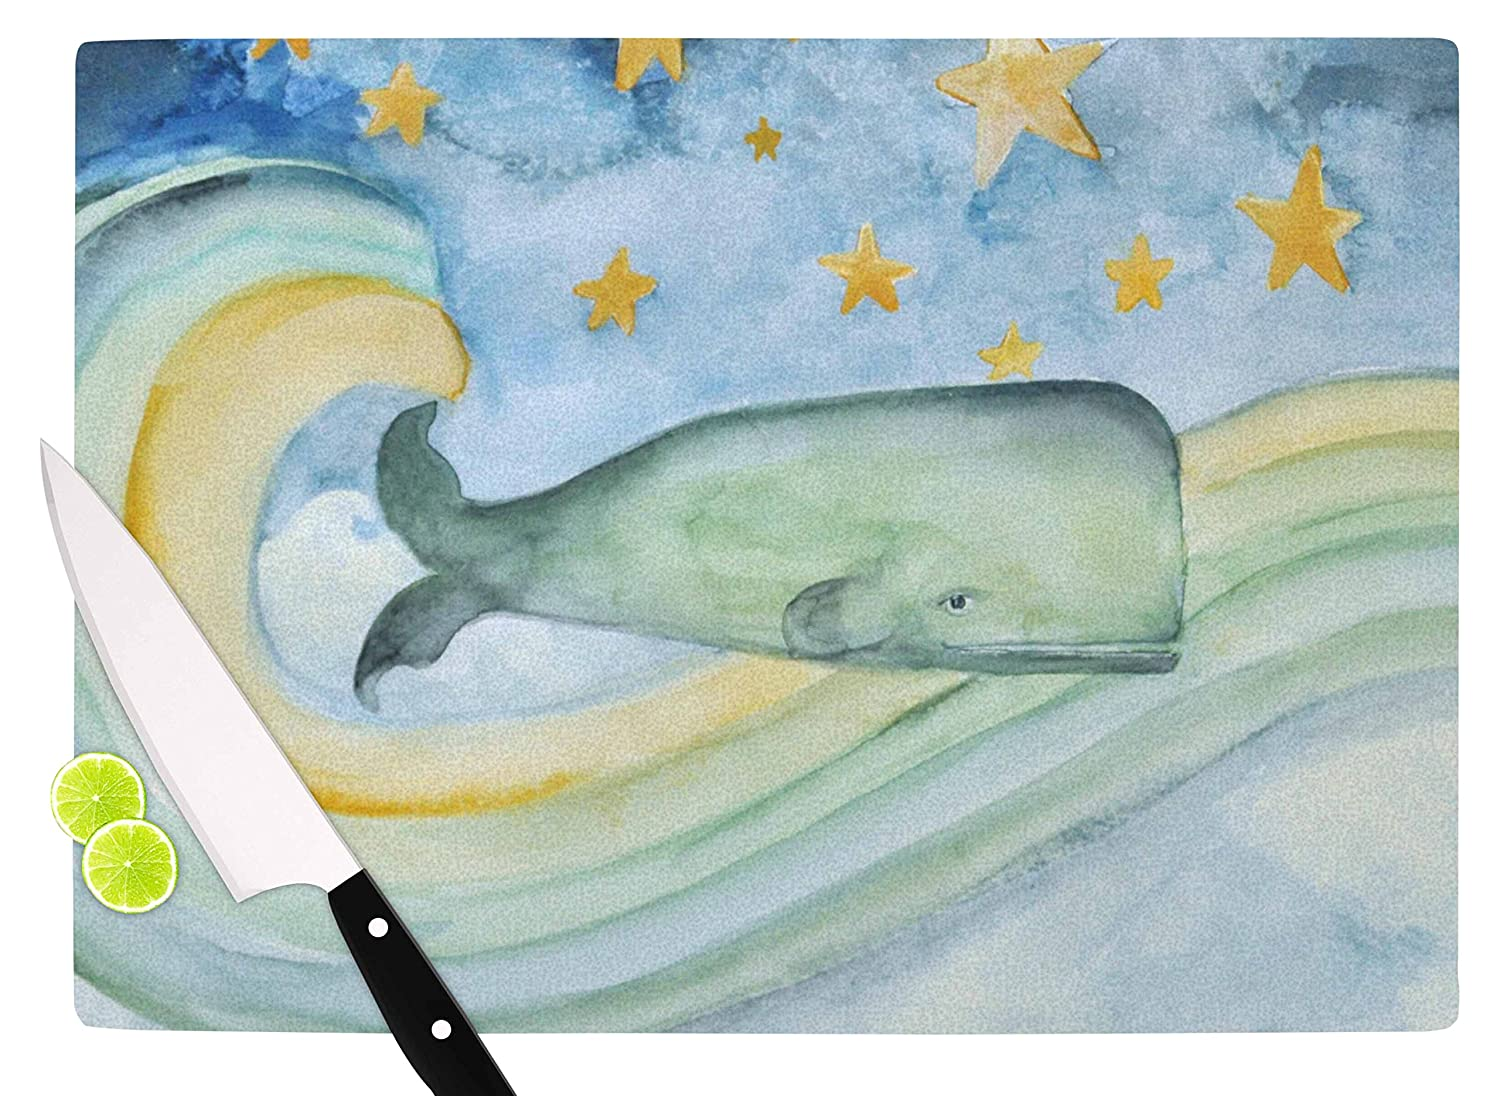 Multicolor KESS InHouse JR1001ACB01 Jennifer RizzoSwimming WIth The Stars Illustration Animals Cutting Board 11.5 x 8.25